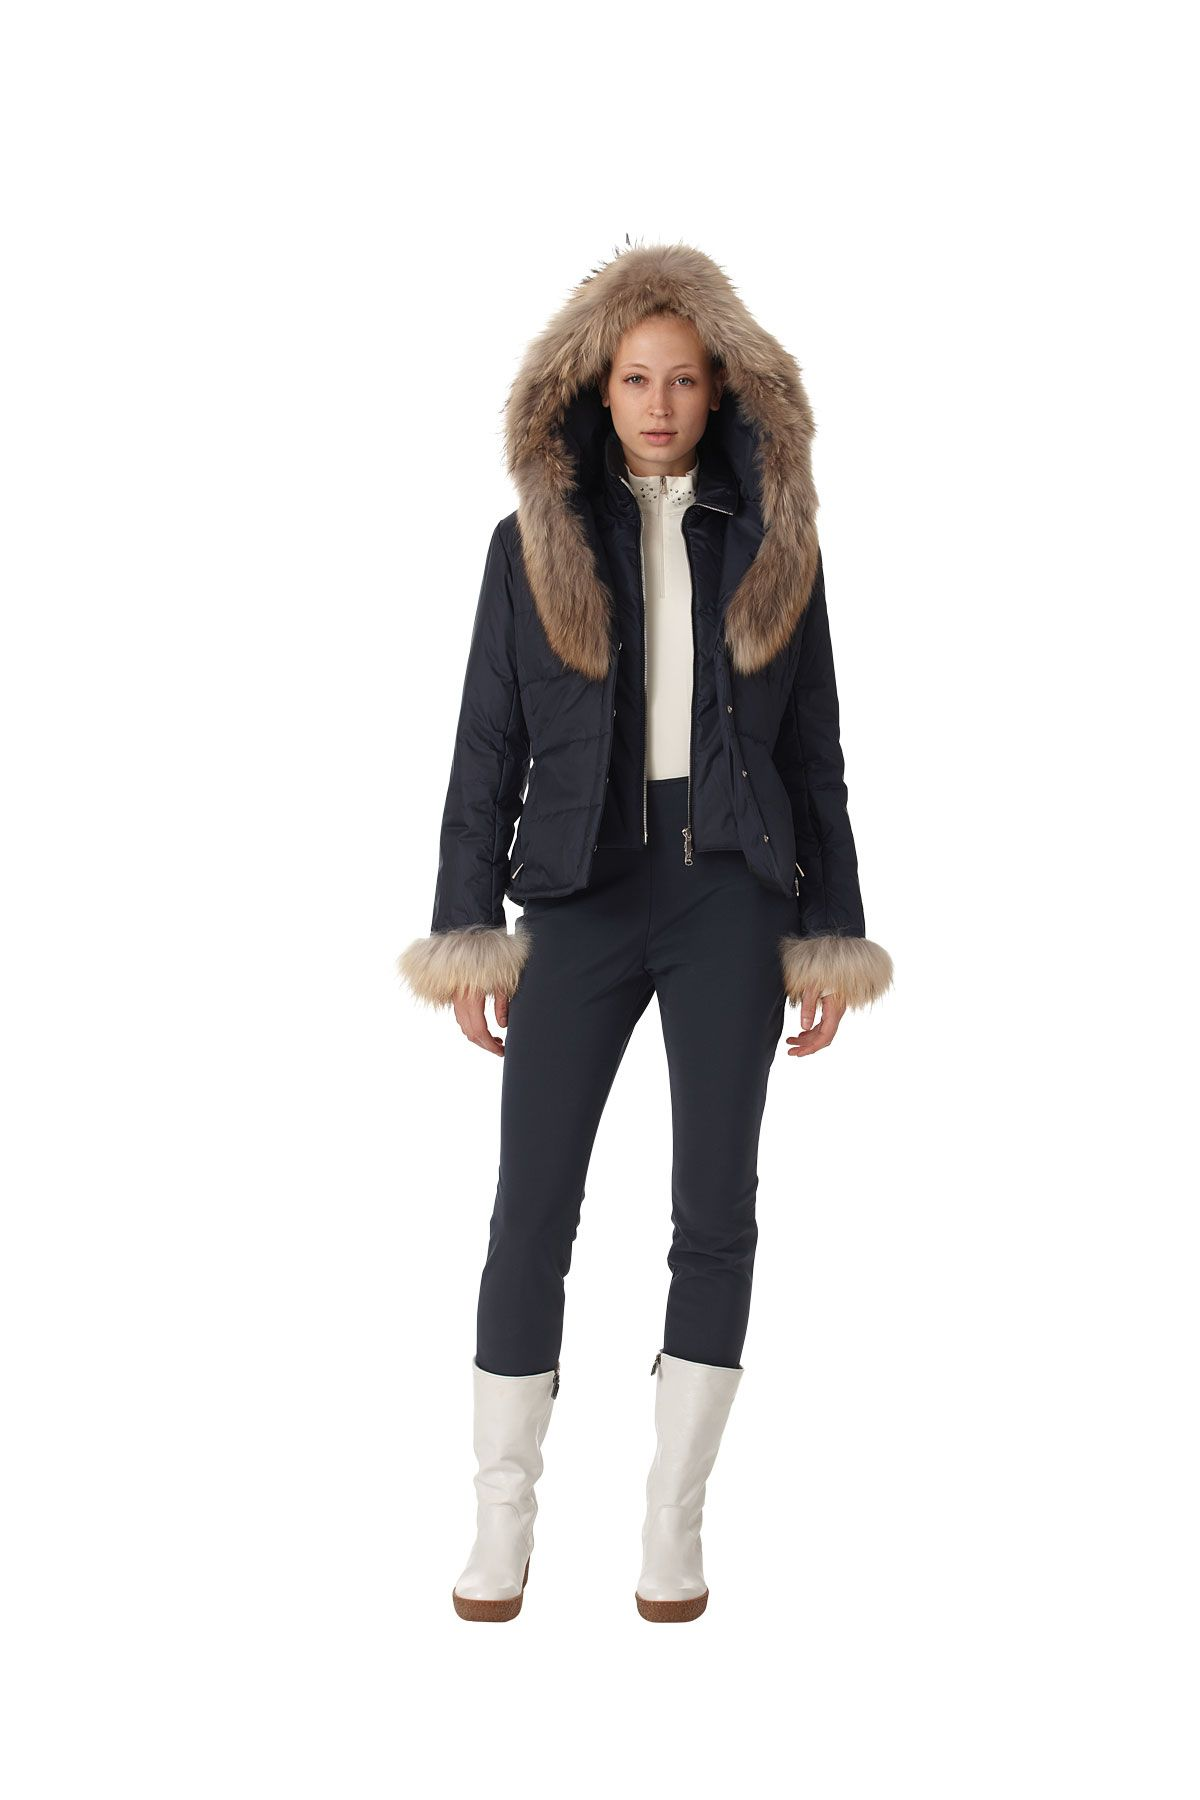 898c25cdca SNOW Fashion NYC  Cutting Edge Ski Wear Lookbook